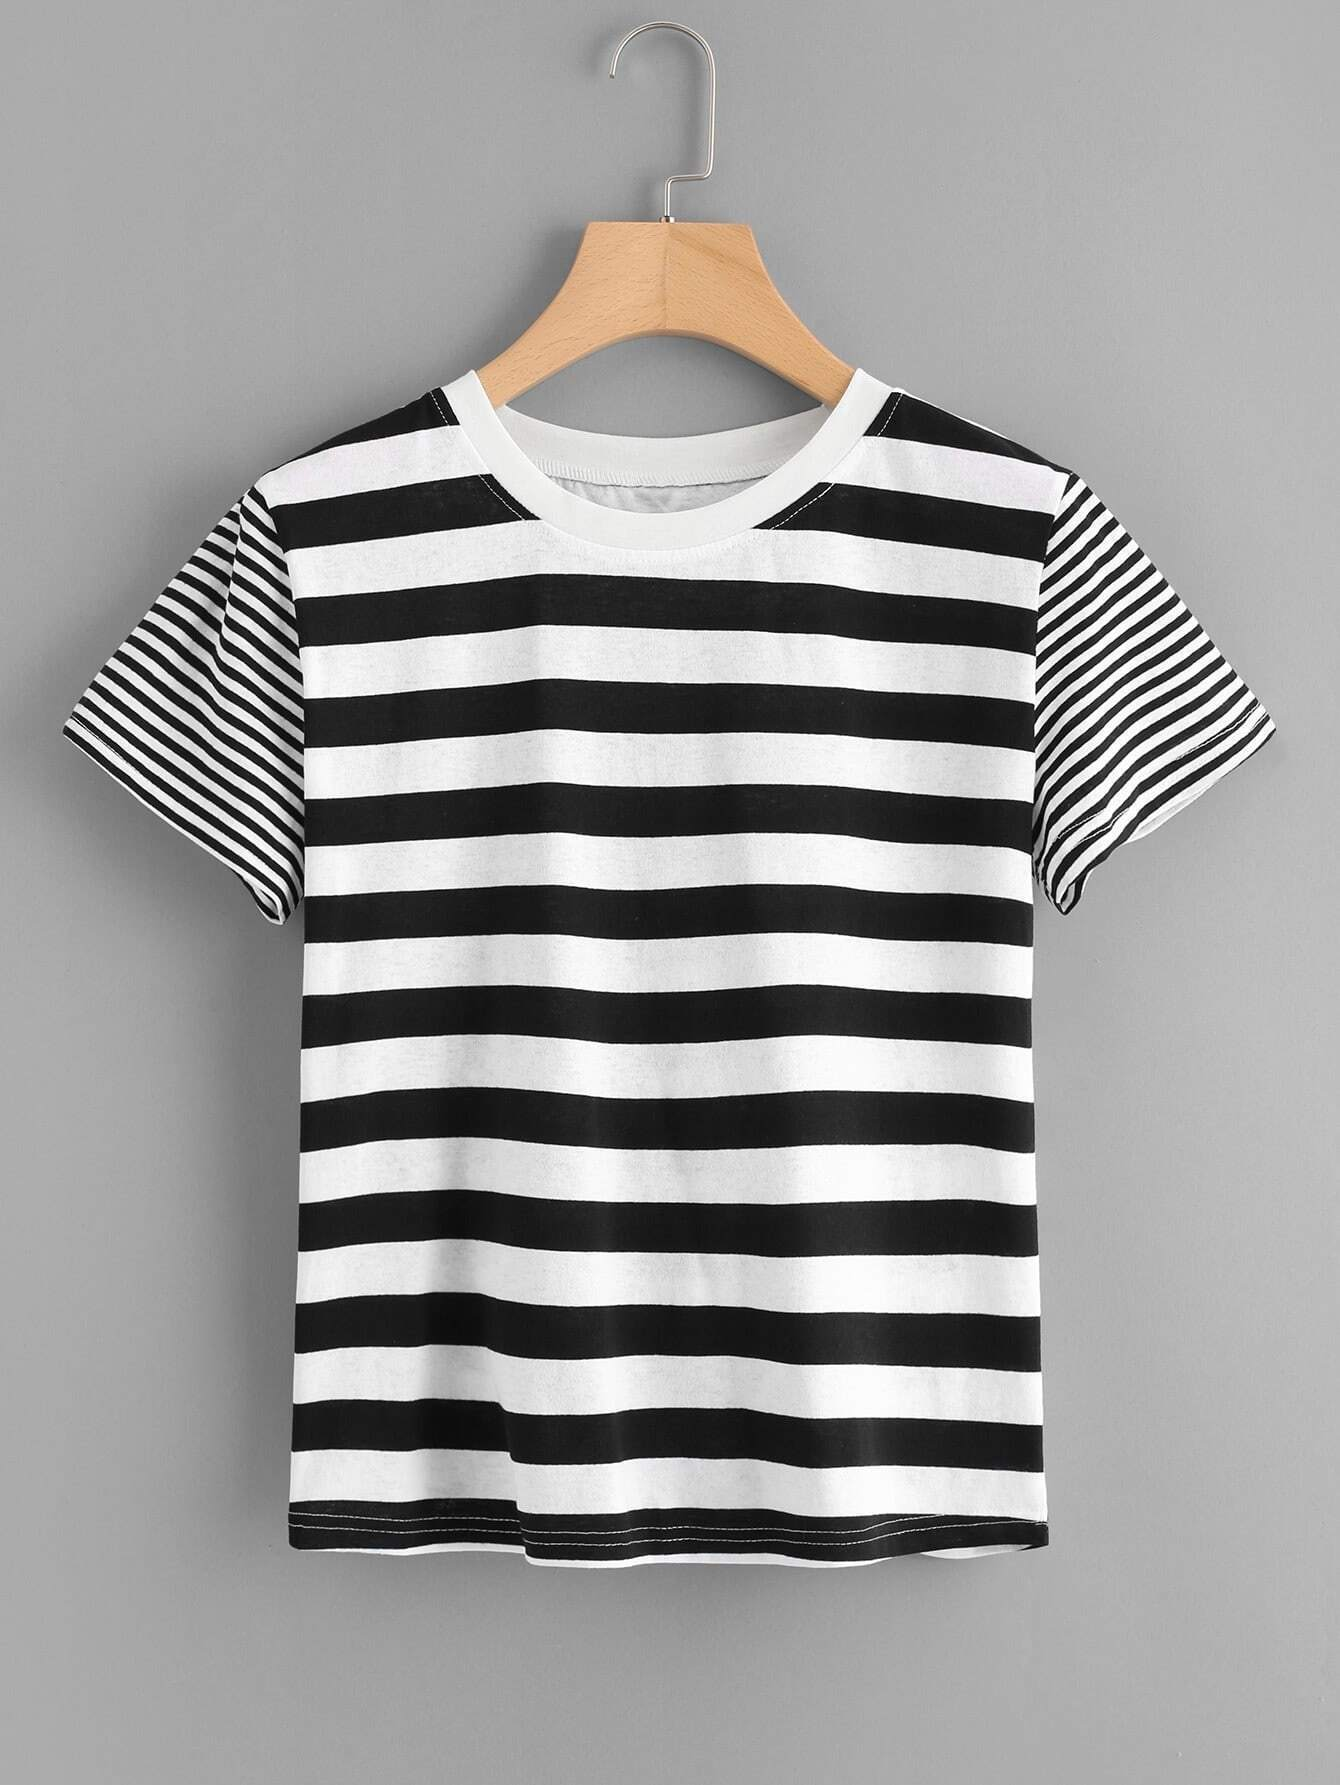 Two Tone Mixed Stripe T-shirt two tone mixed stripe t shirt